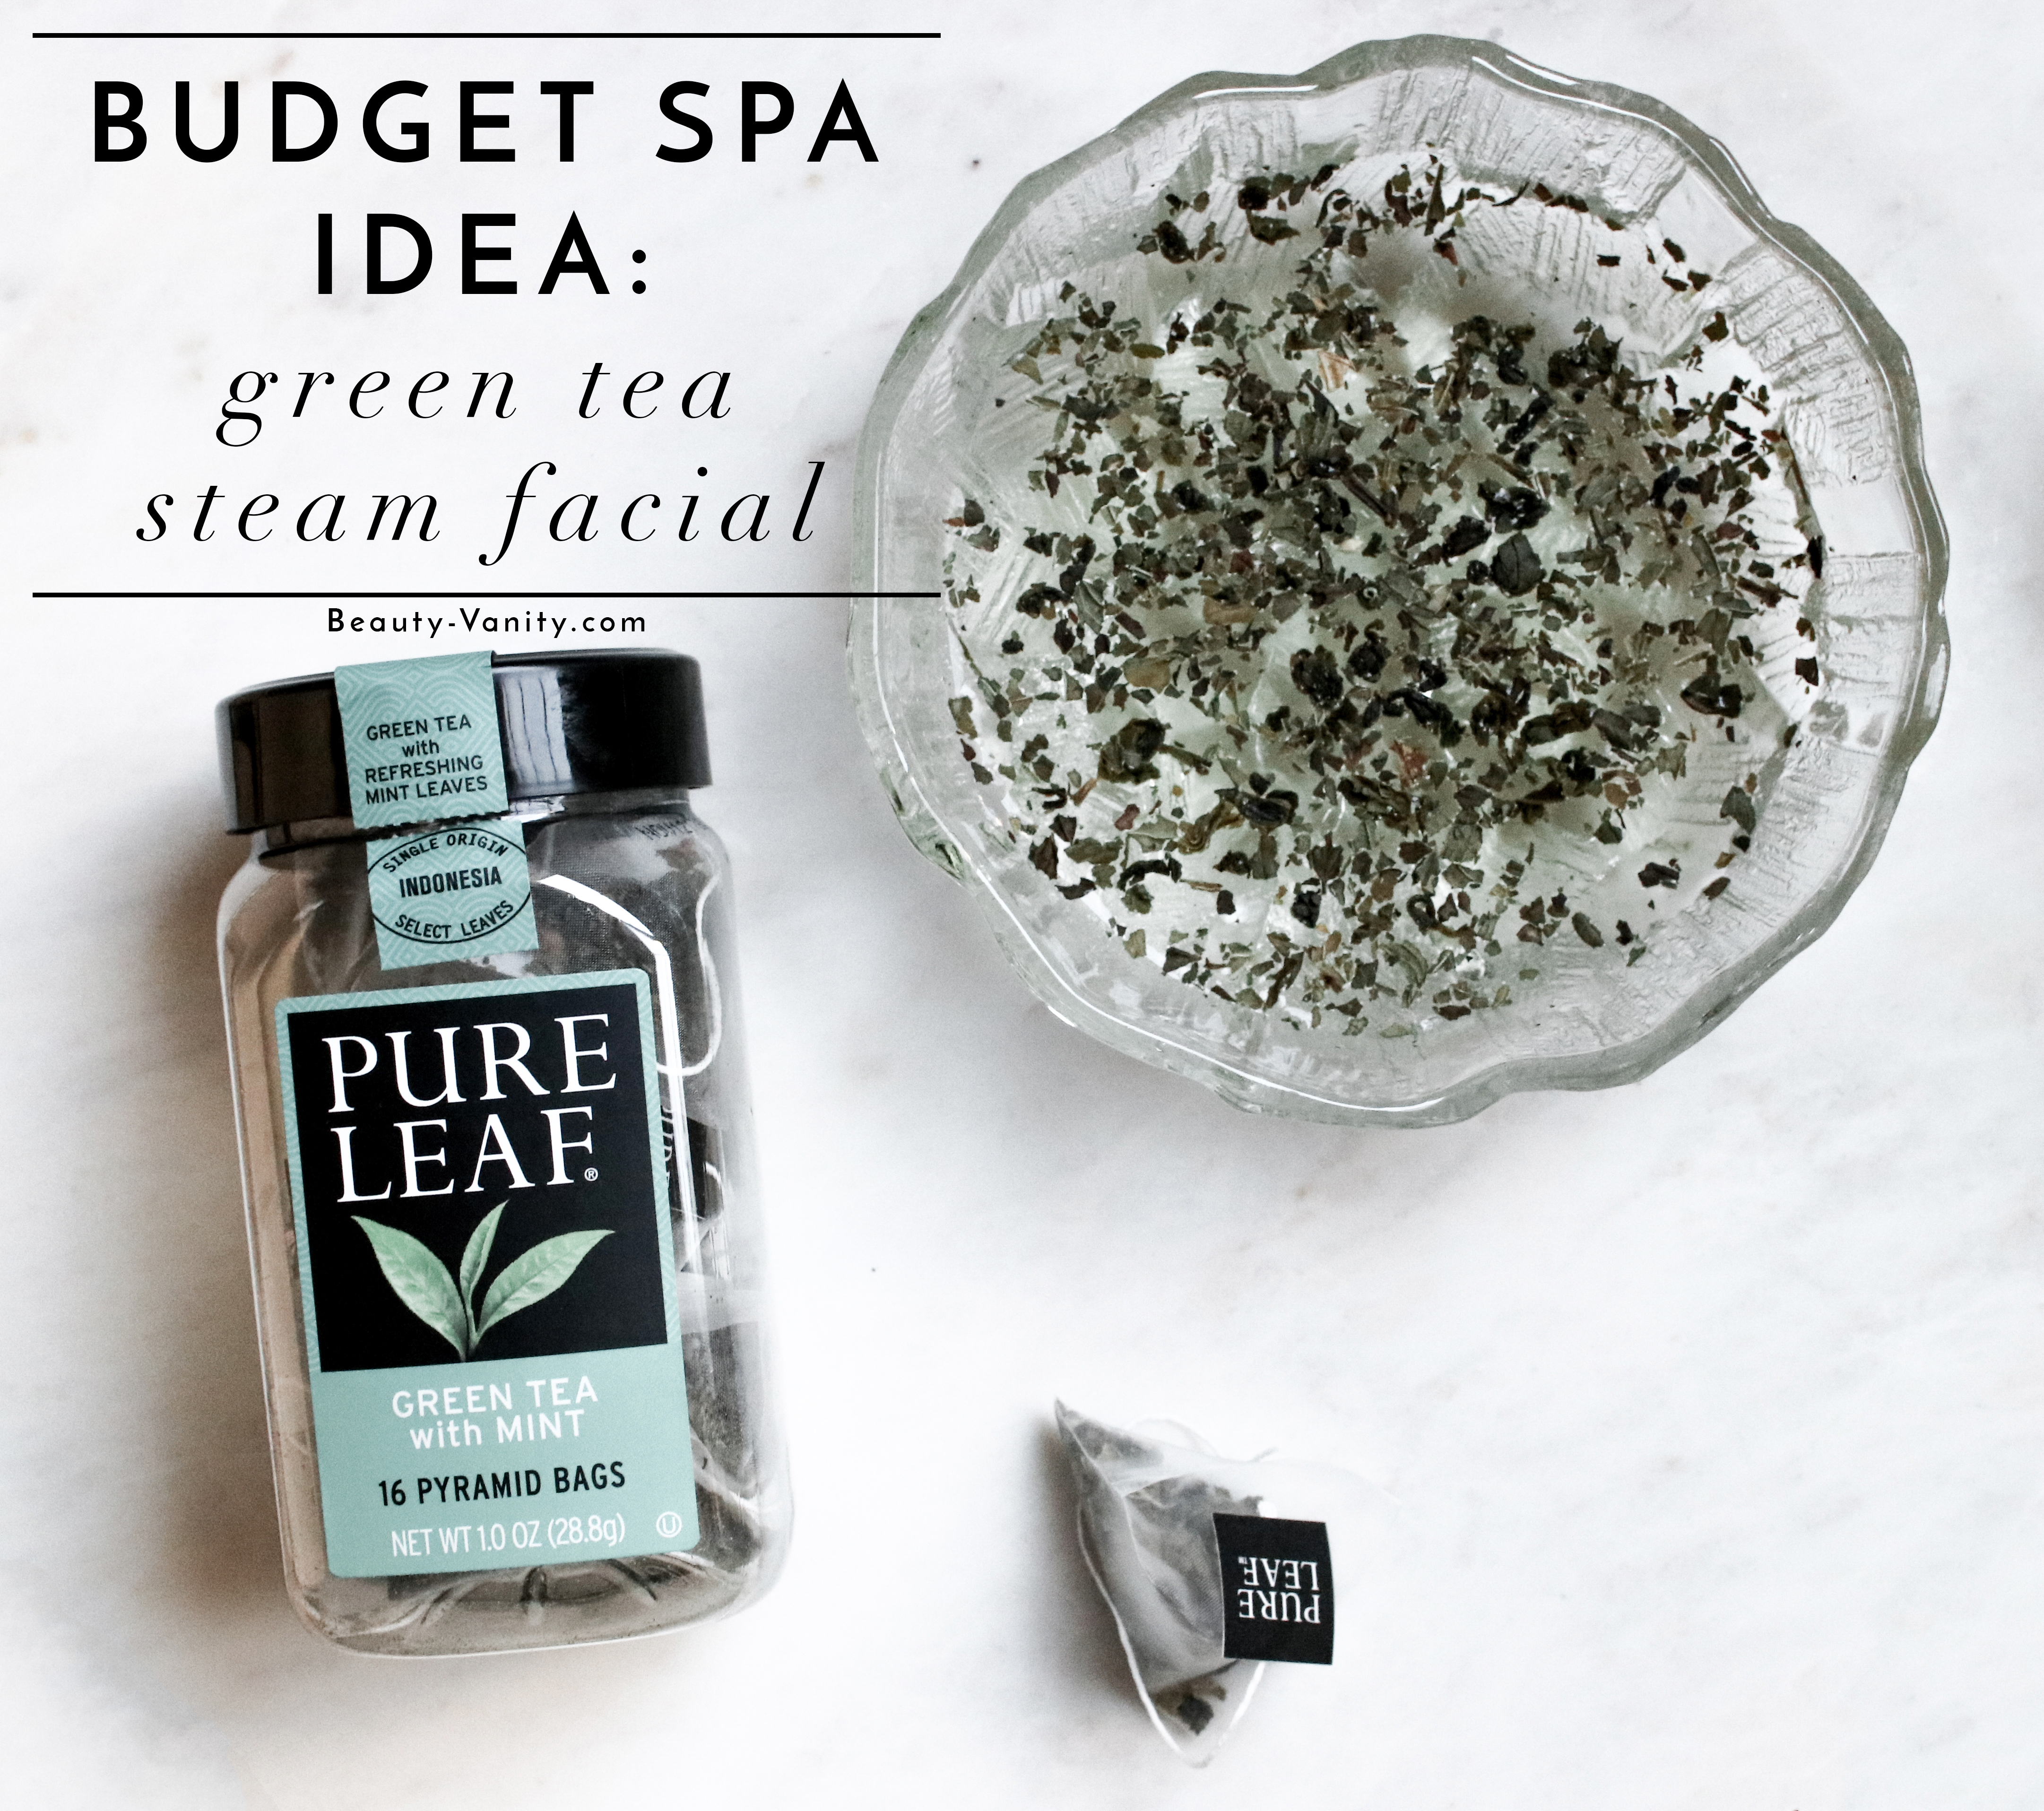 How to Green Tea Steam Facial | The Beauty Vanity